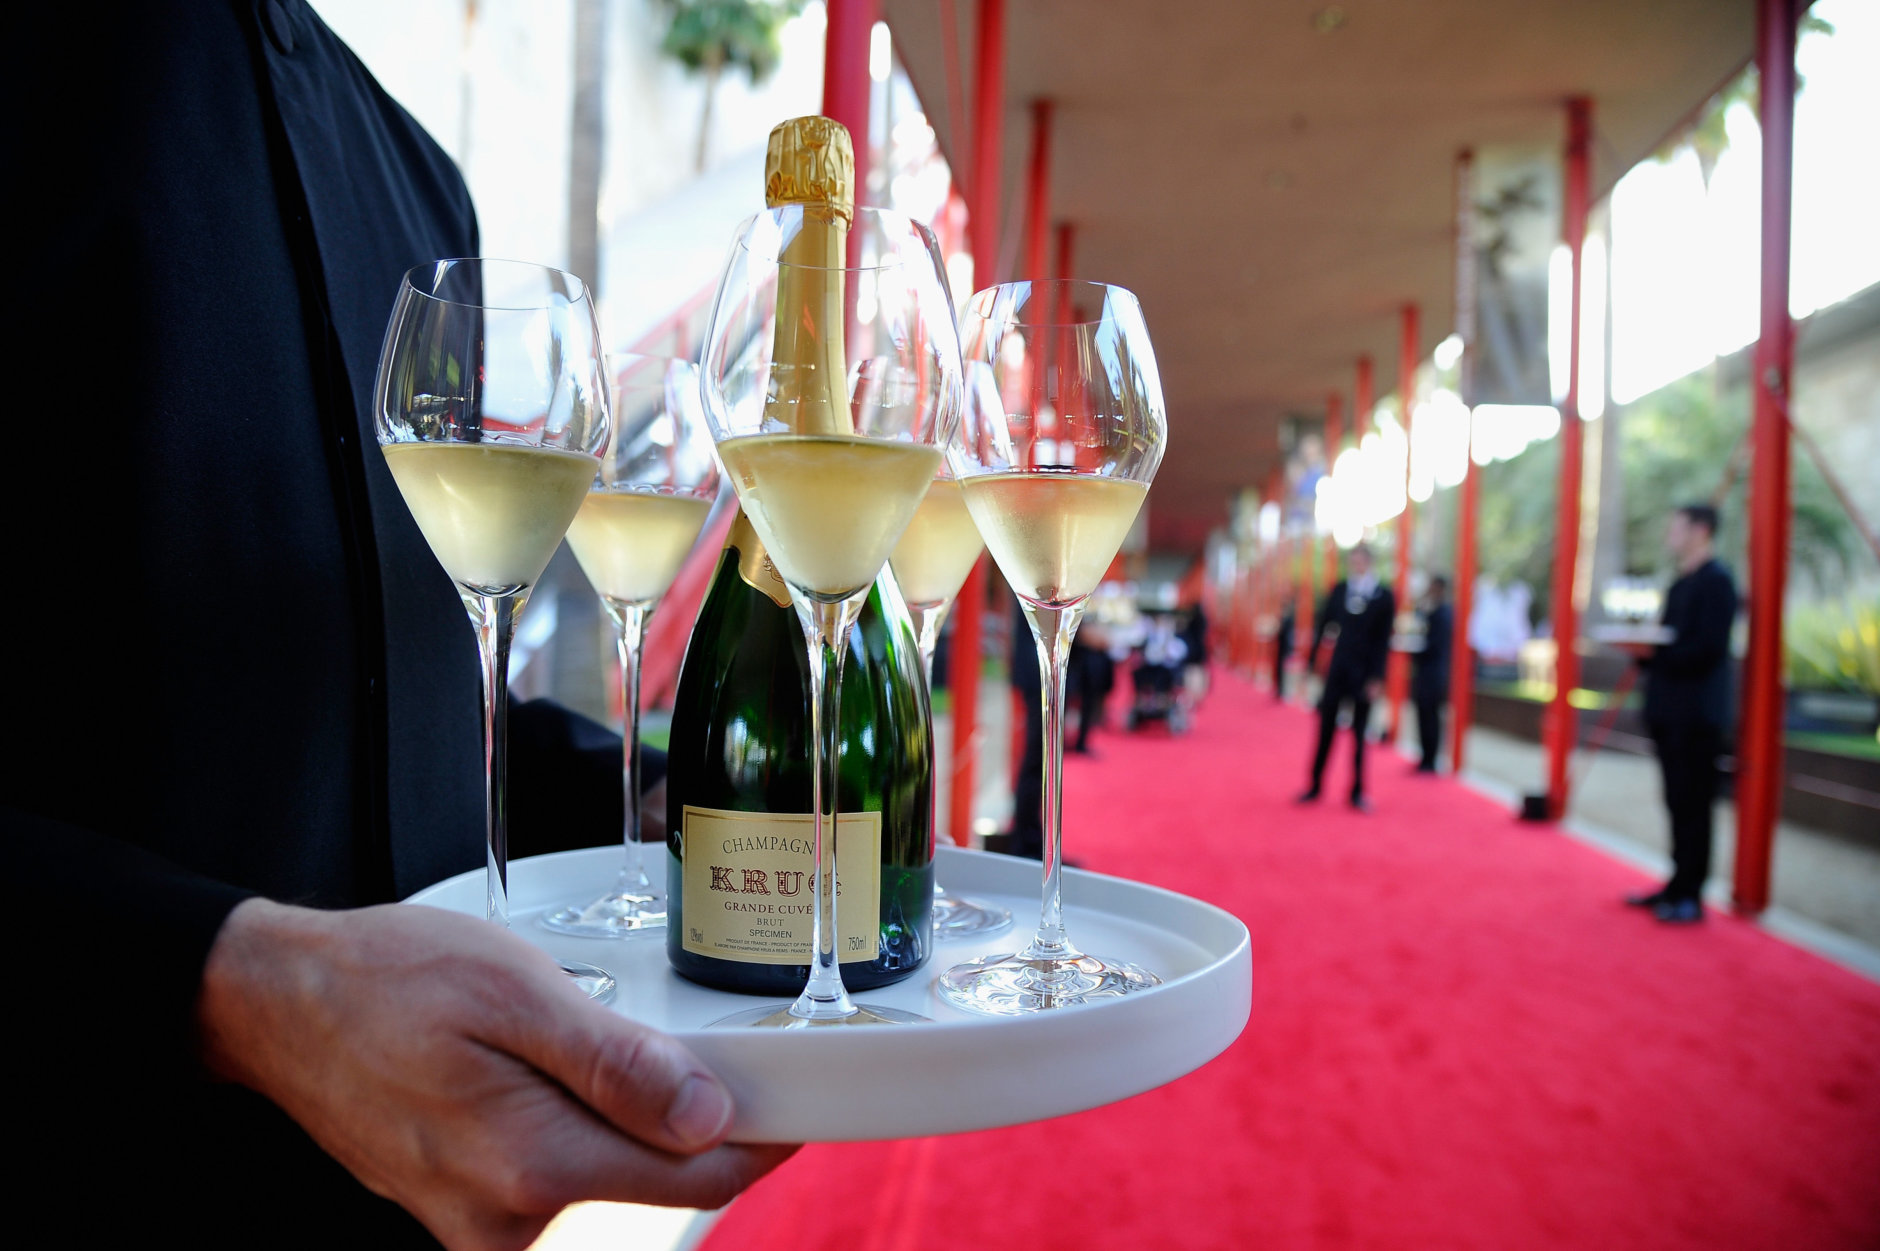 LOS ANGELES, CA - APRIL 18: Krug champagne is served during the LACMA 50th Anniversary Gala sponsored by Christie's at LACMA on April 18, 2015 in Los Angeles, California.  (Photo by John Sciulli/Getty Images for LACMA)